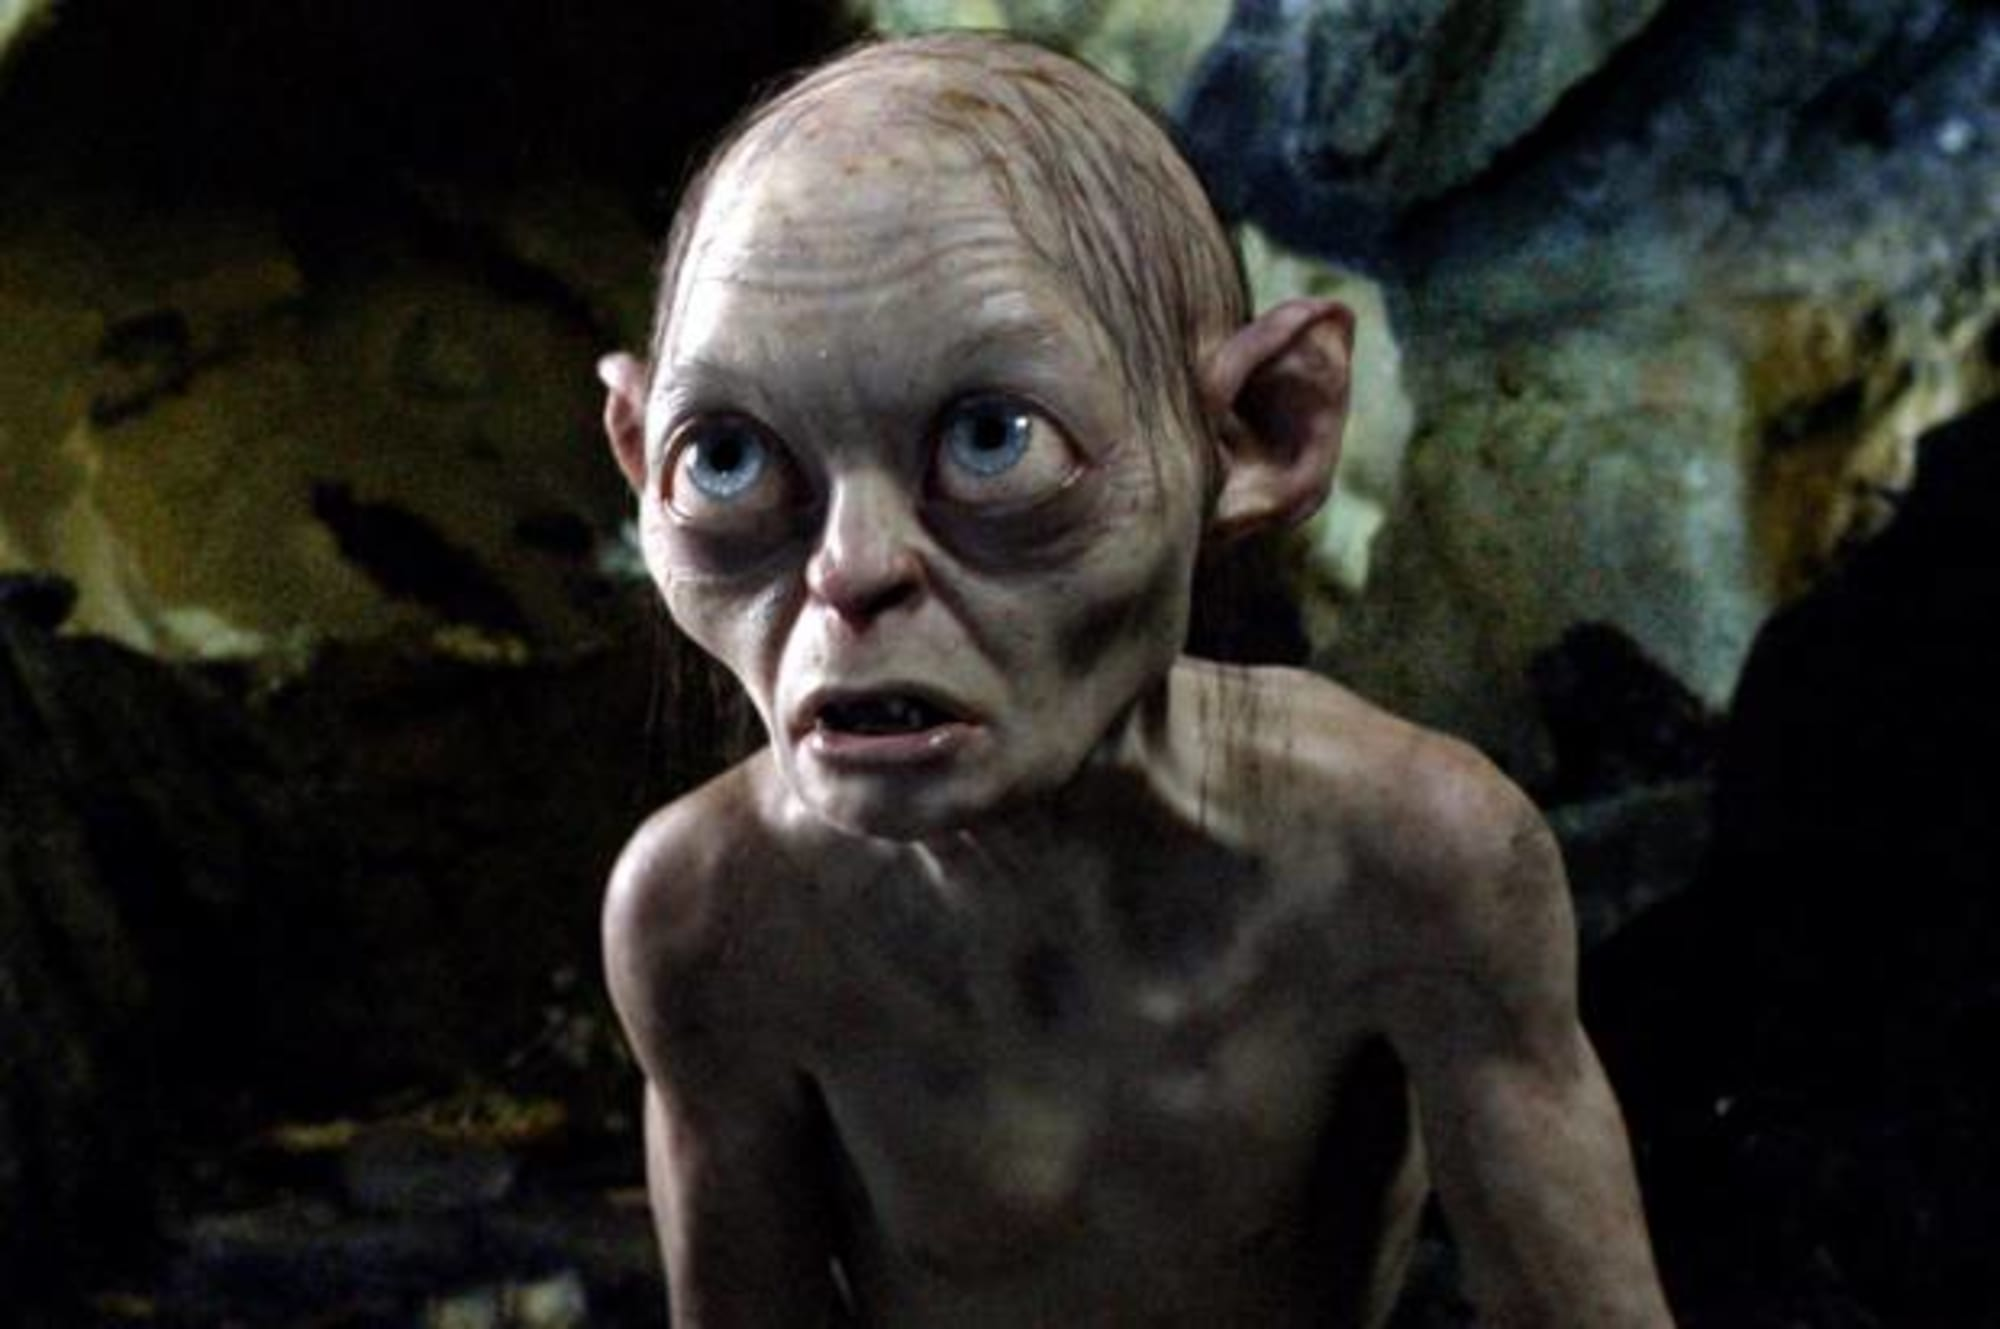 Lord Of The Rings Game Gives Gollum More Hair So He S Less Creepy